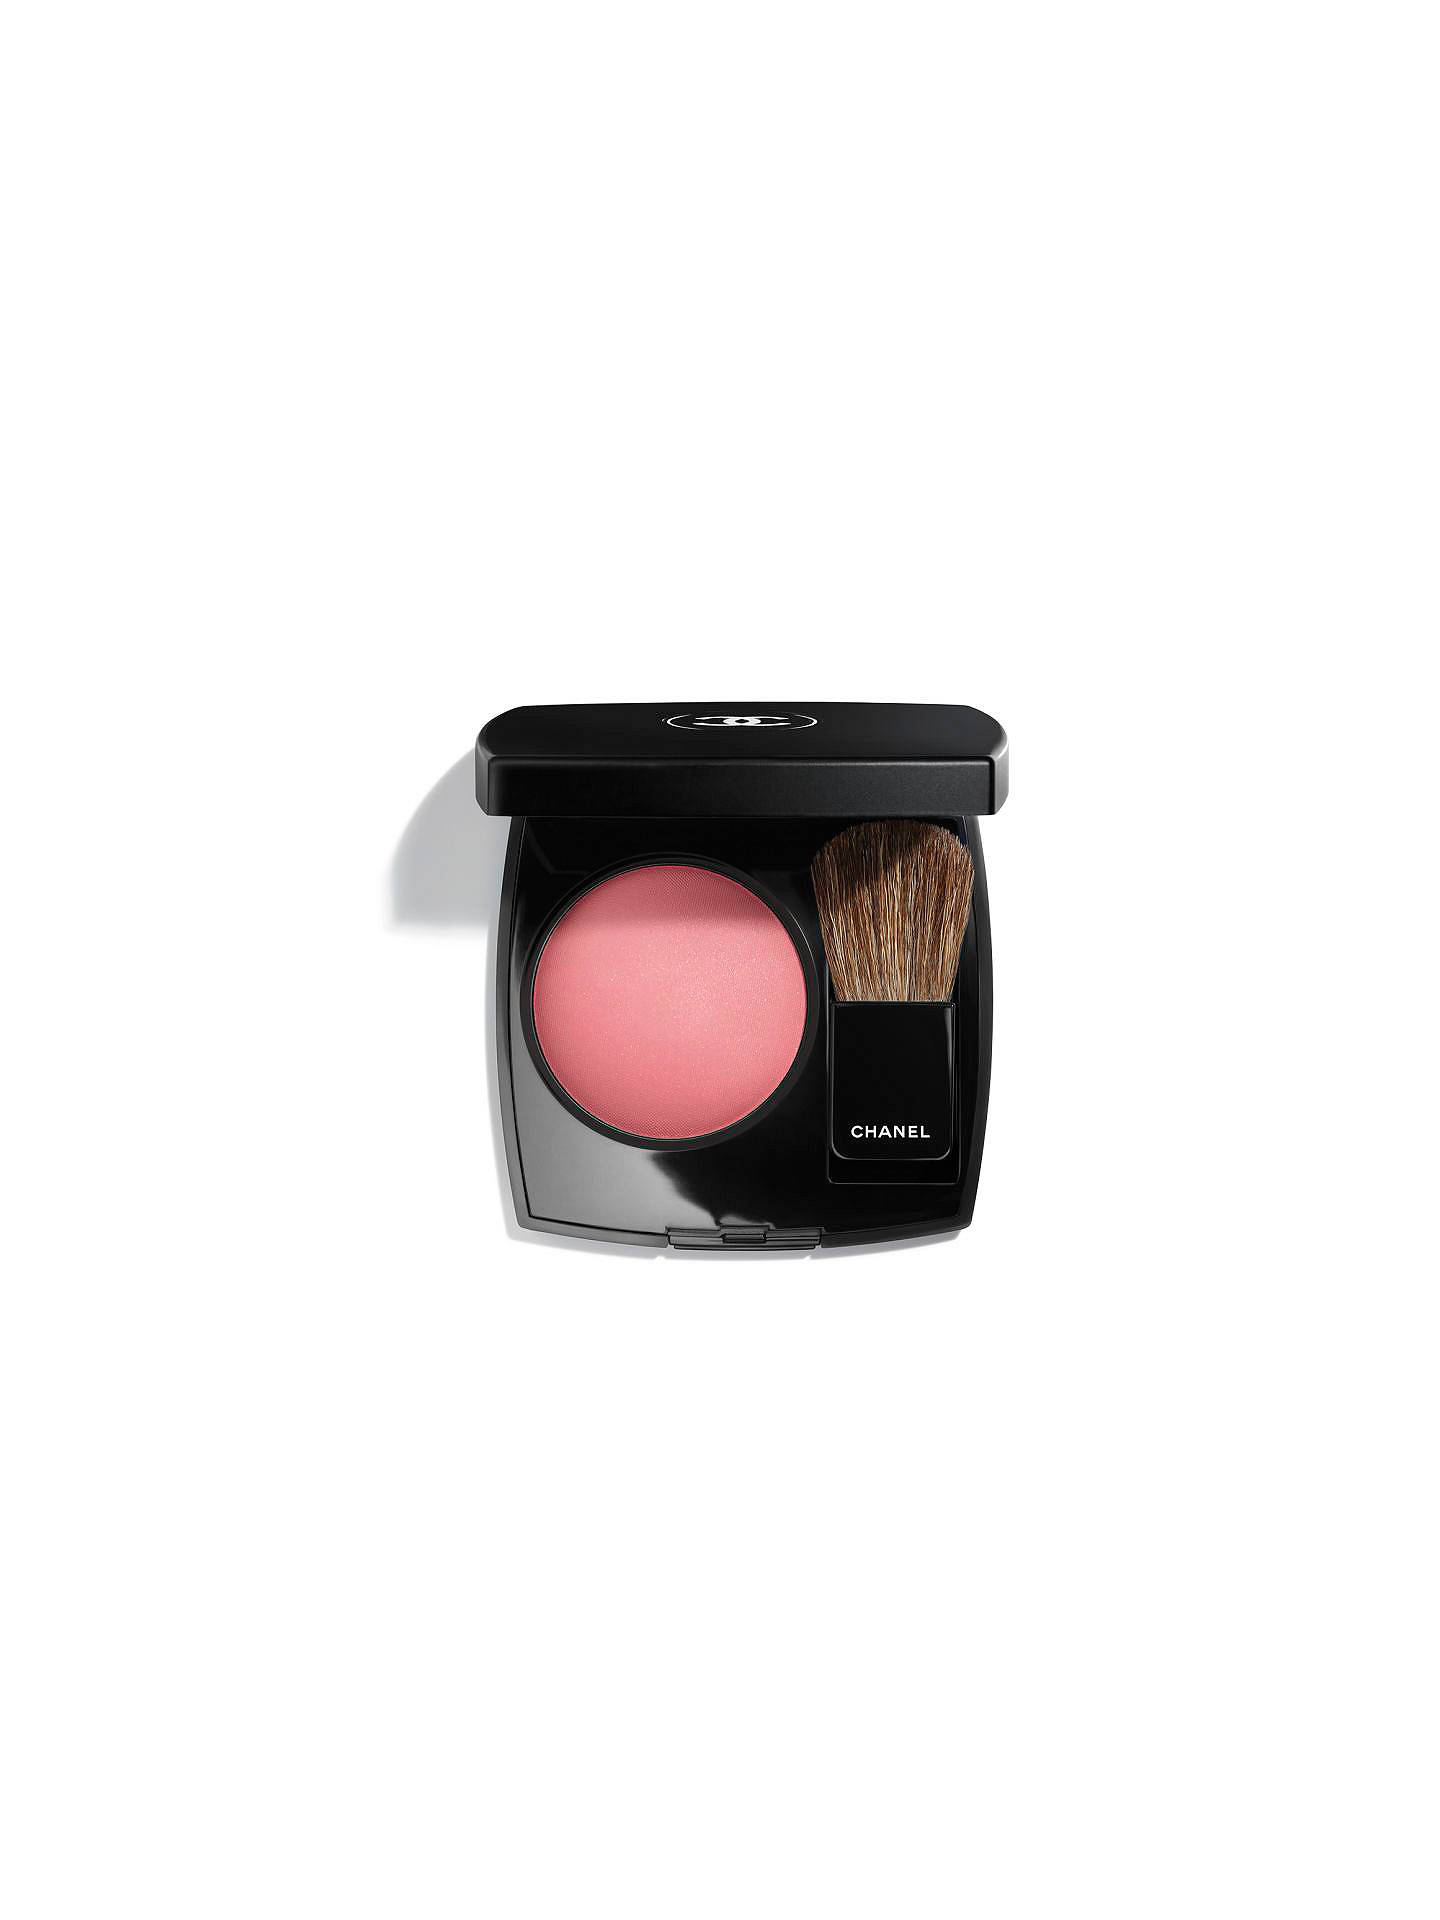 BuyCHANEL JOUES CONTRASTE Powder Blush, 440 Quintessence Online at johnlewis.com